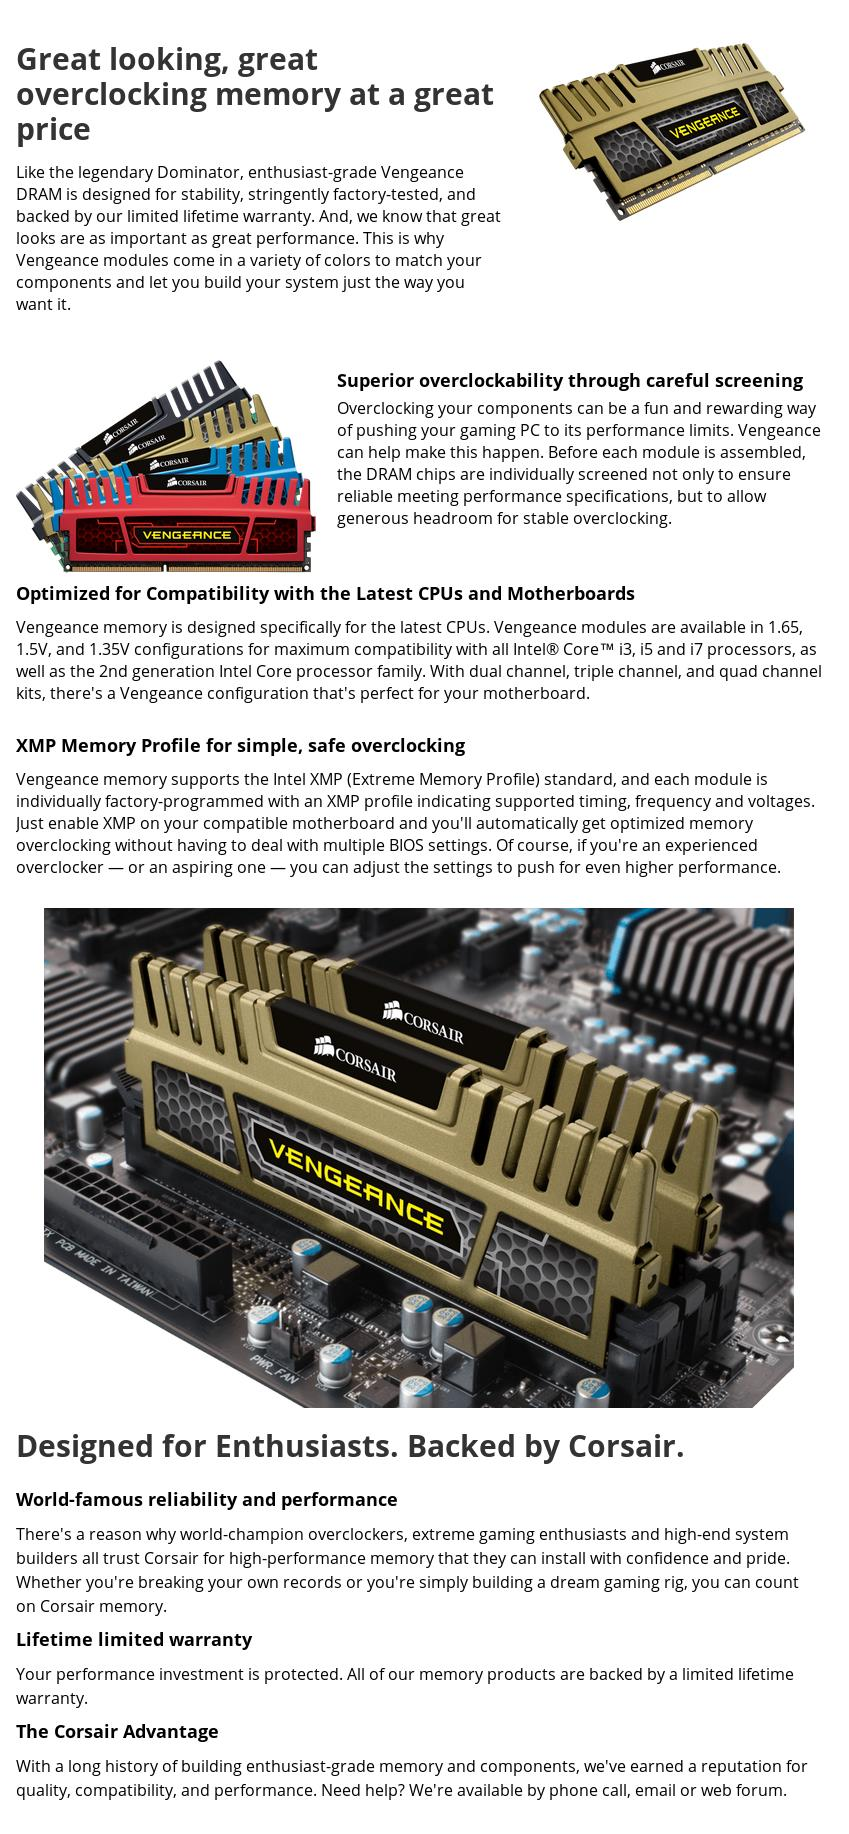 A large marketing image providing additional information about the product Corsair 16GB Kit (2x8GB) DDR3 Vengeance C9 1600MHz - Additional alt info not provided